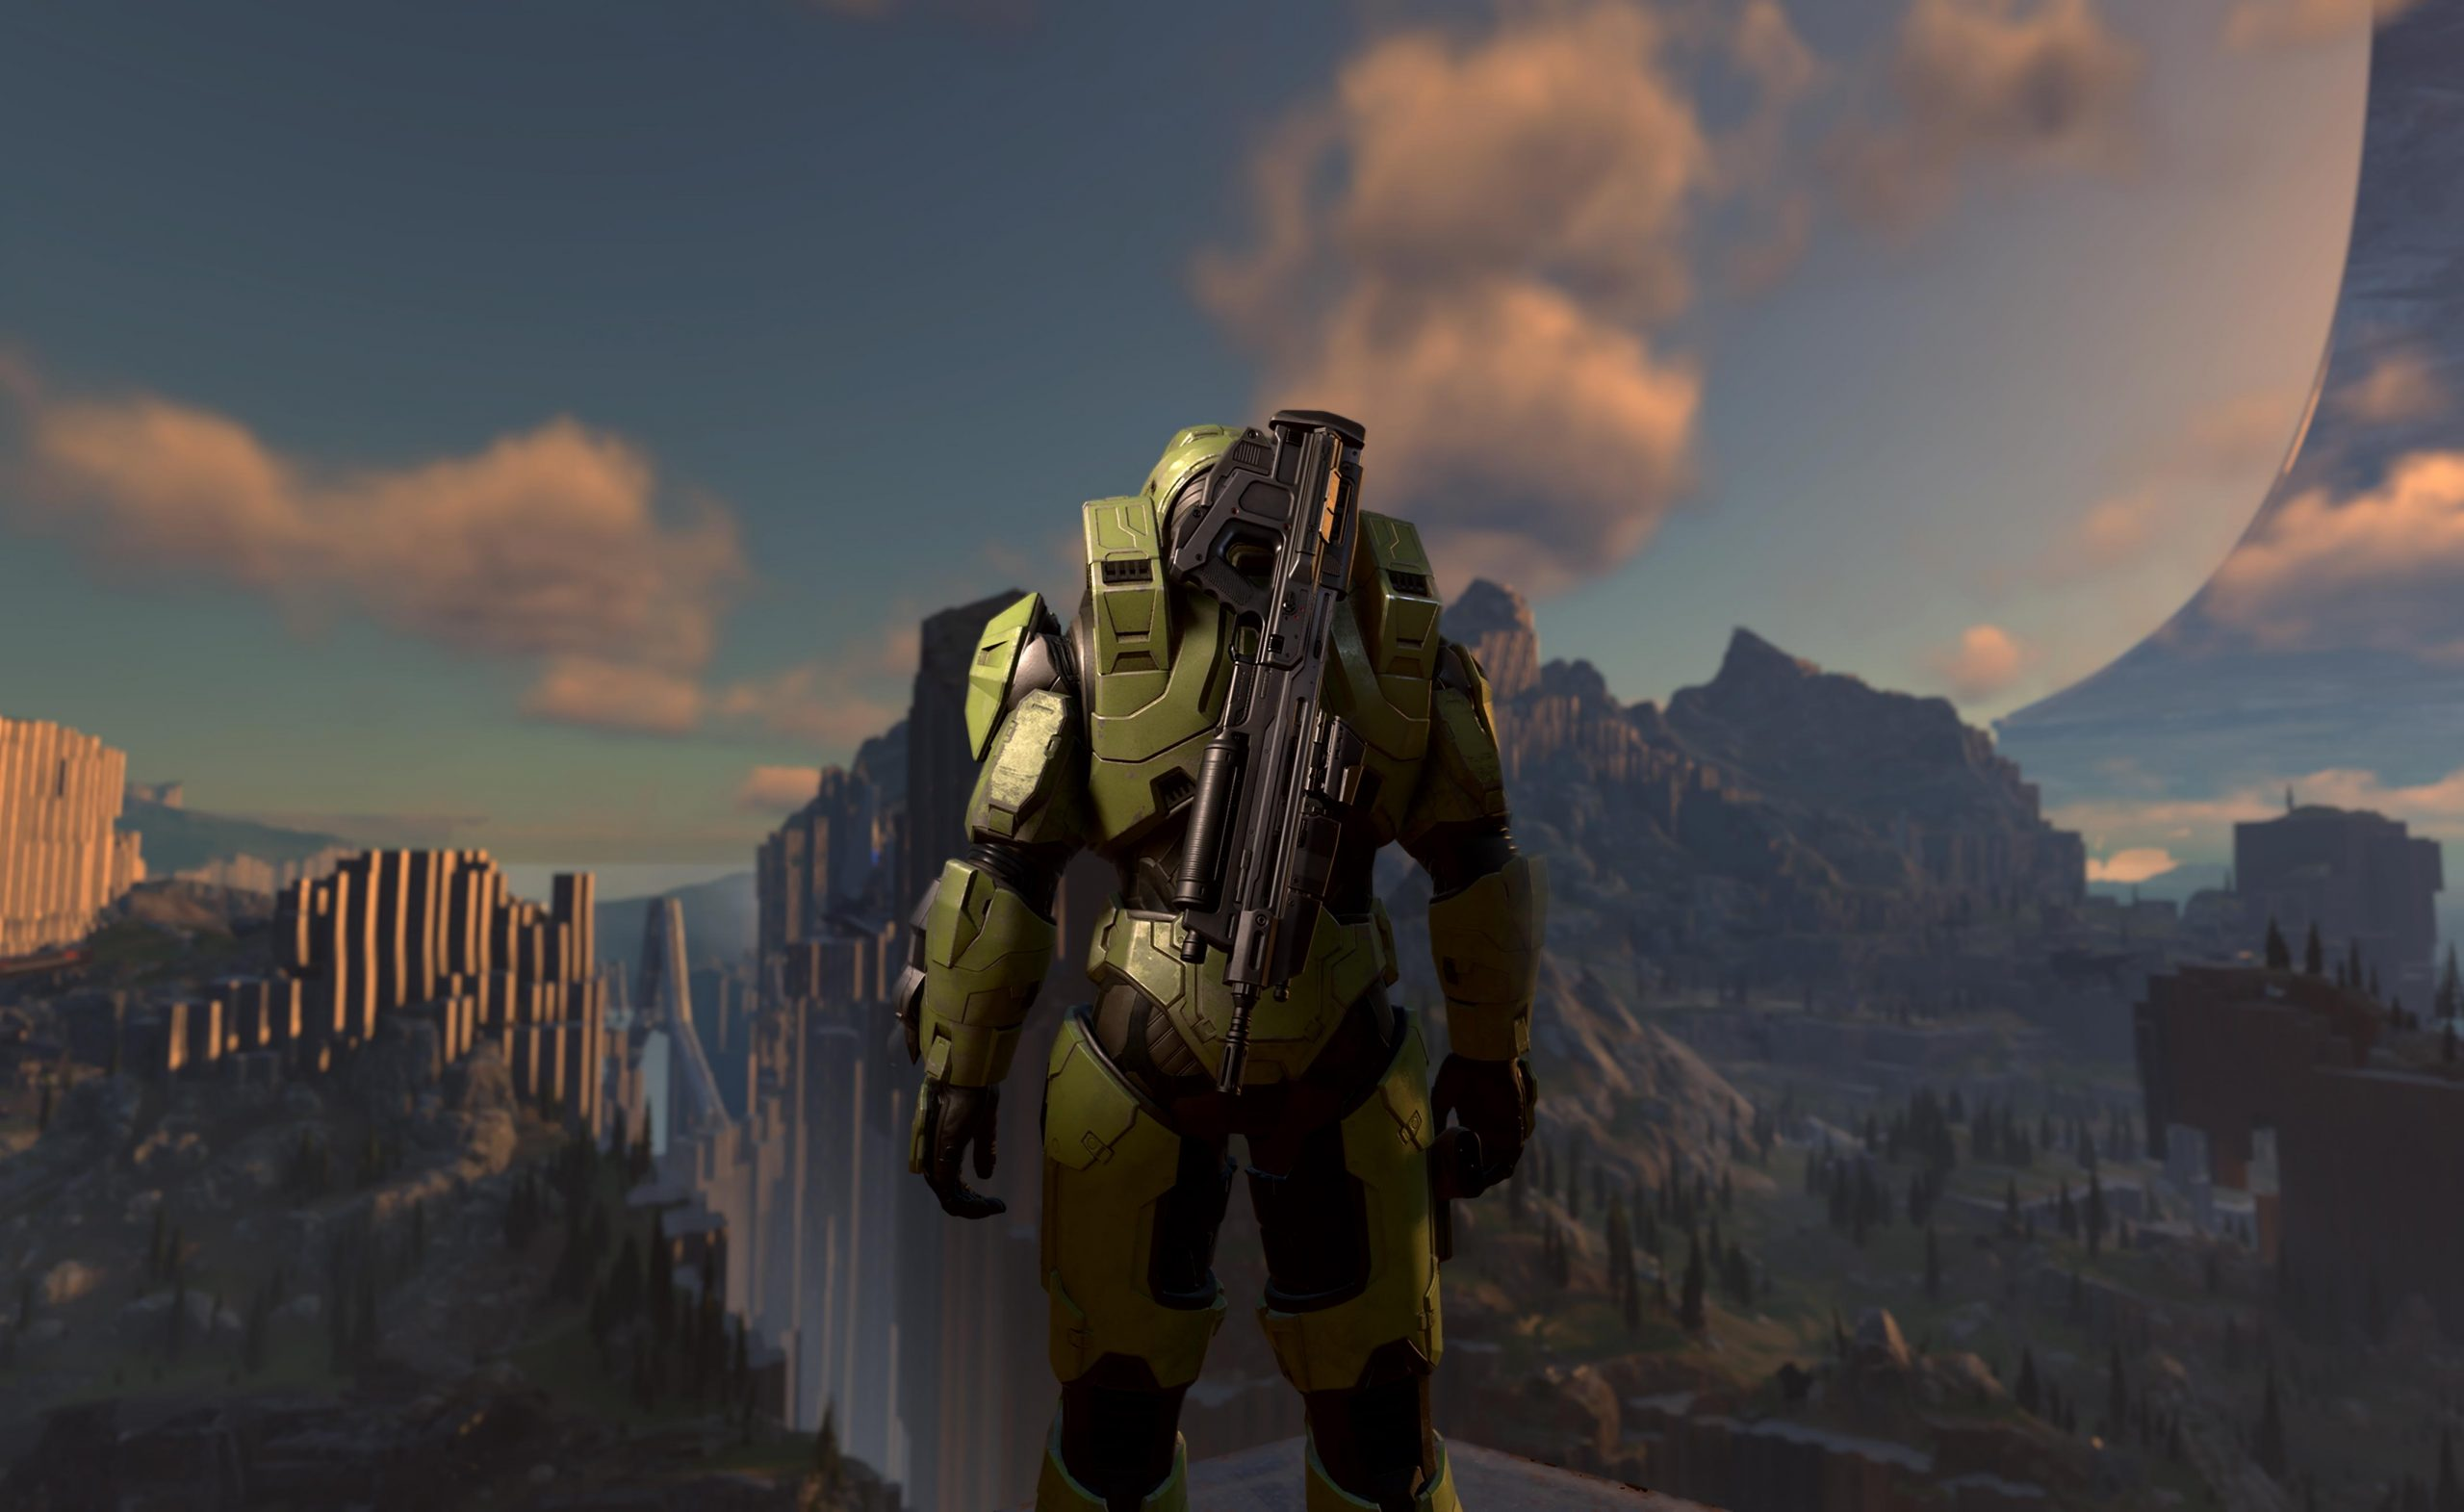 Halo Infinite – coming soon